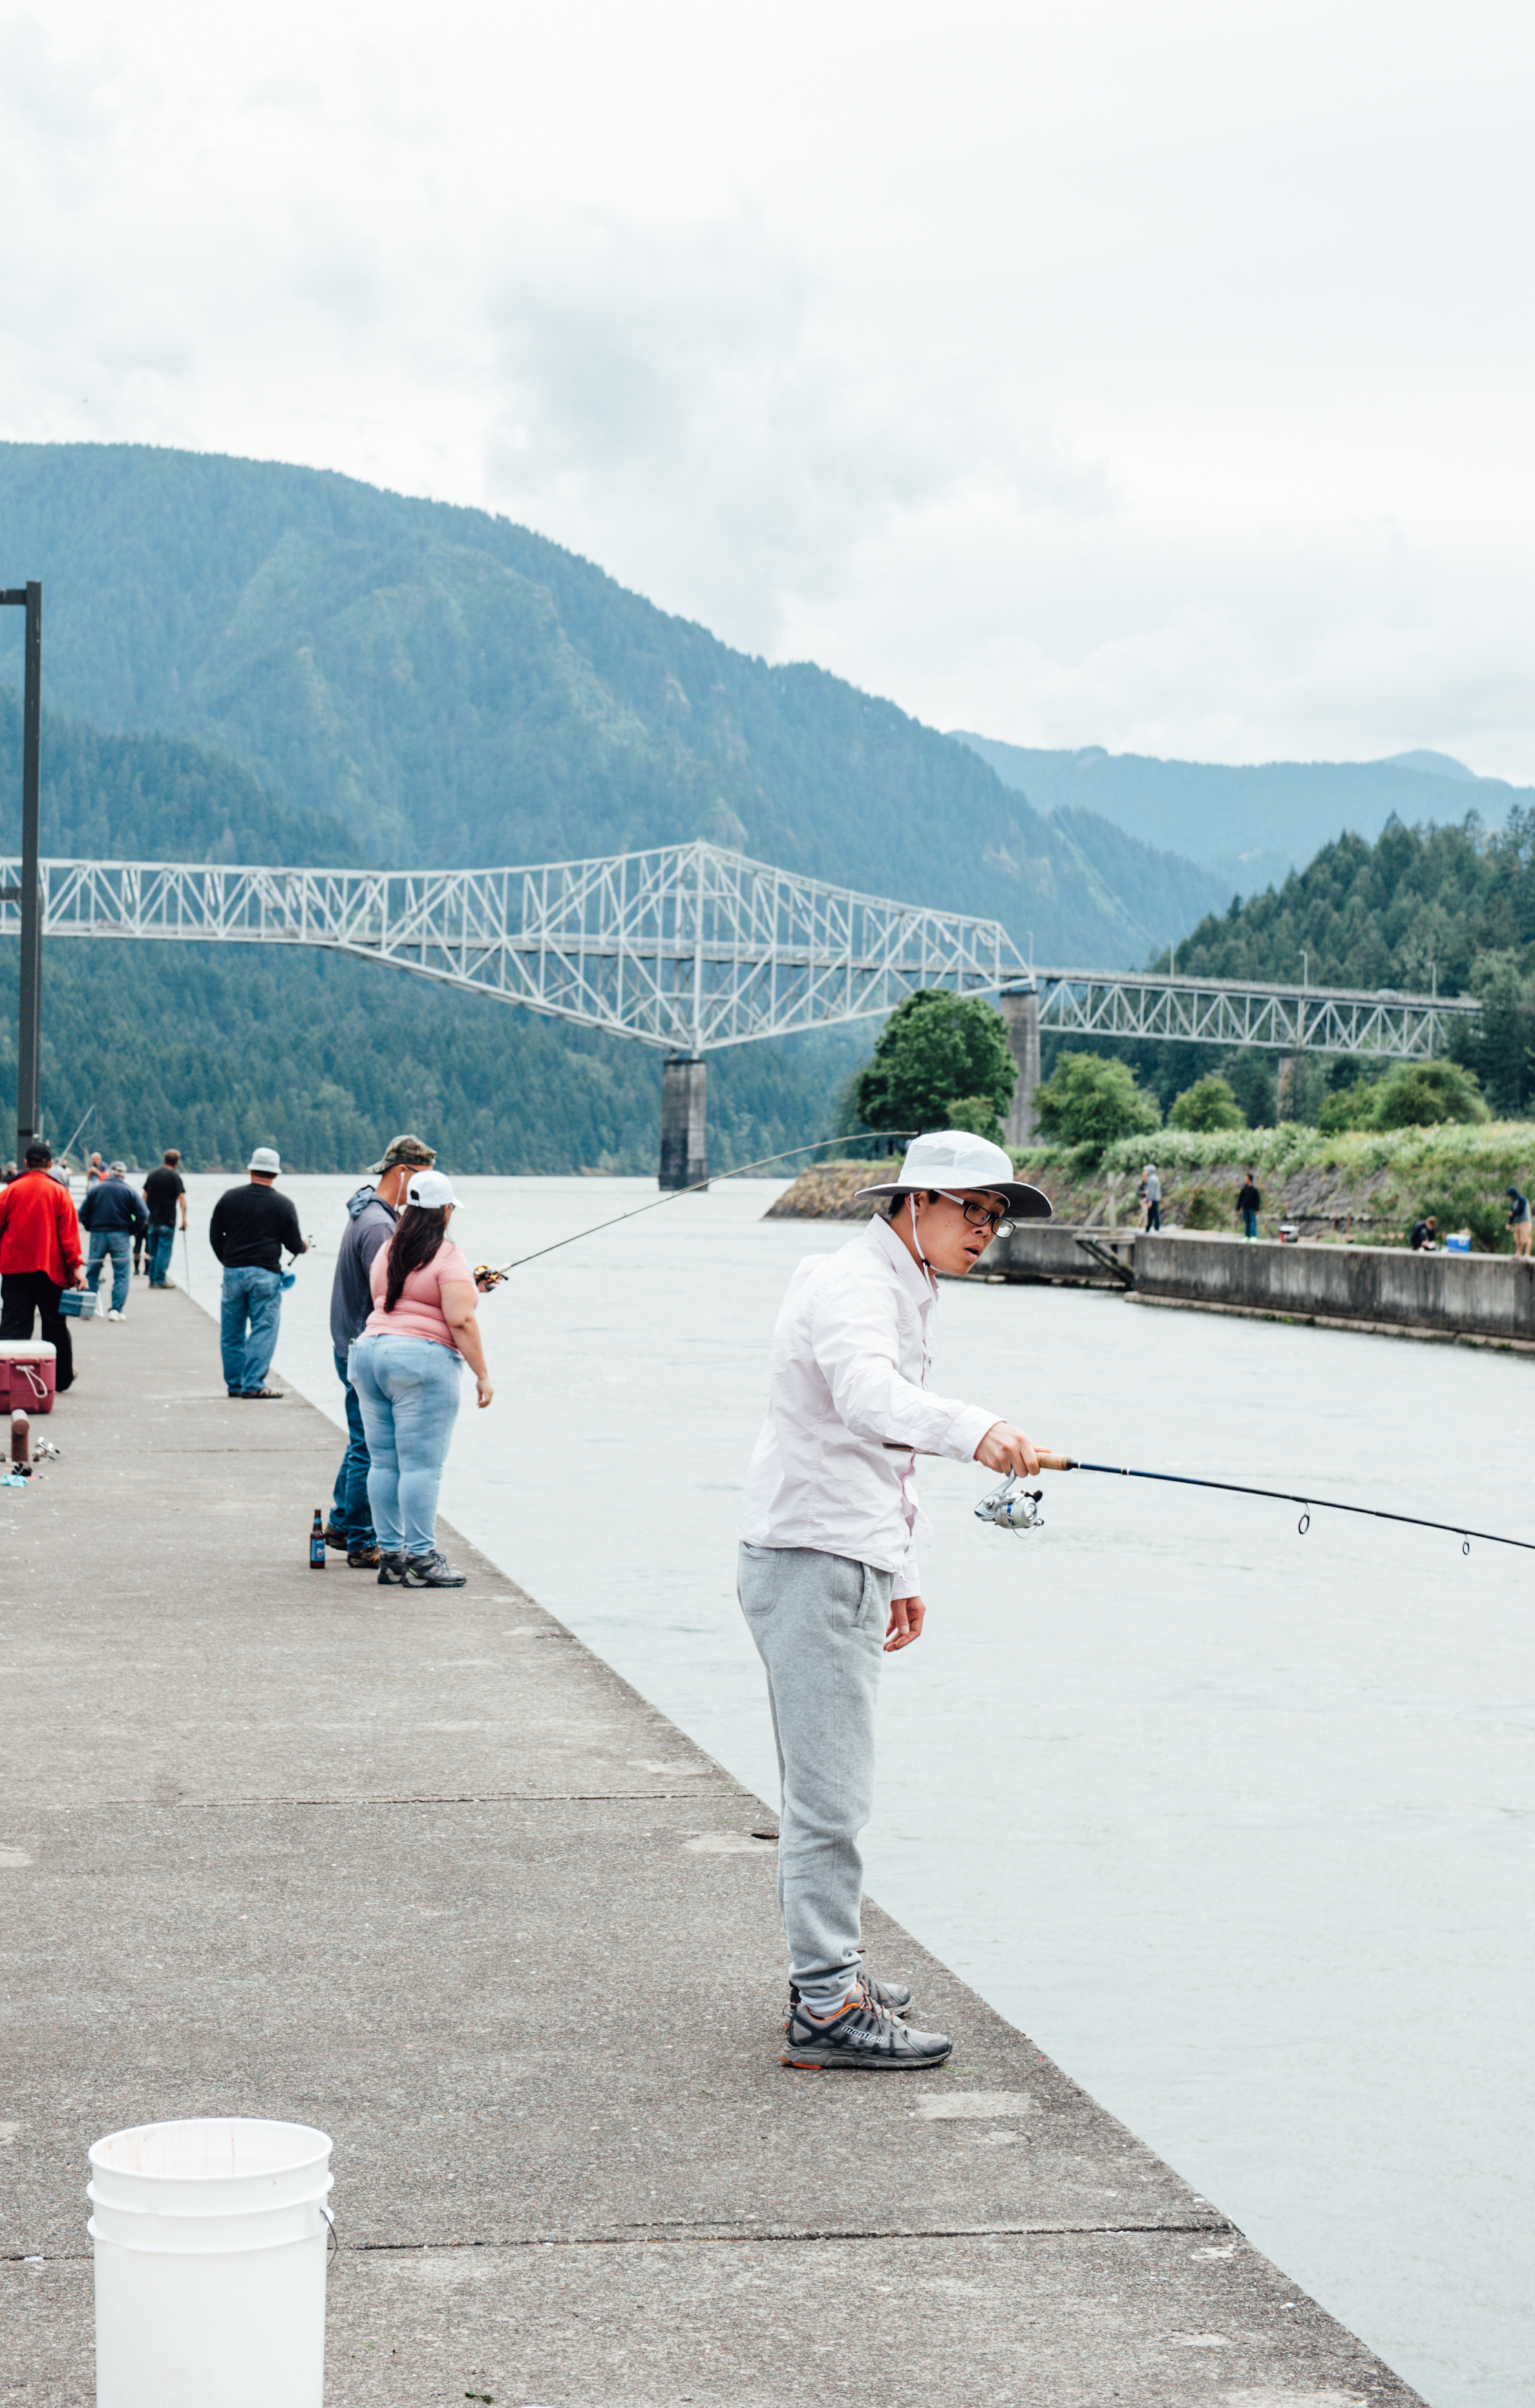 Driving along I-84 you can easily make unexpected detours. That is how we turned off the road to check out The Bridge of the Gods in Cascade Locks. The Cascade Locks Marine Park will give you a great view of the bridge and a nice break from driving to watch fisherman cast a line into the river. (Image: Elizabeth Crook / Seattle Refined)